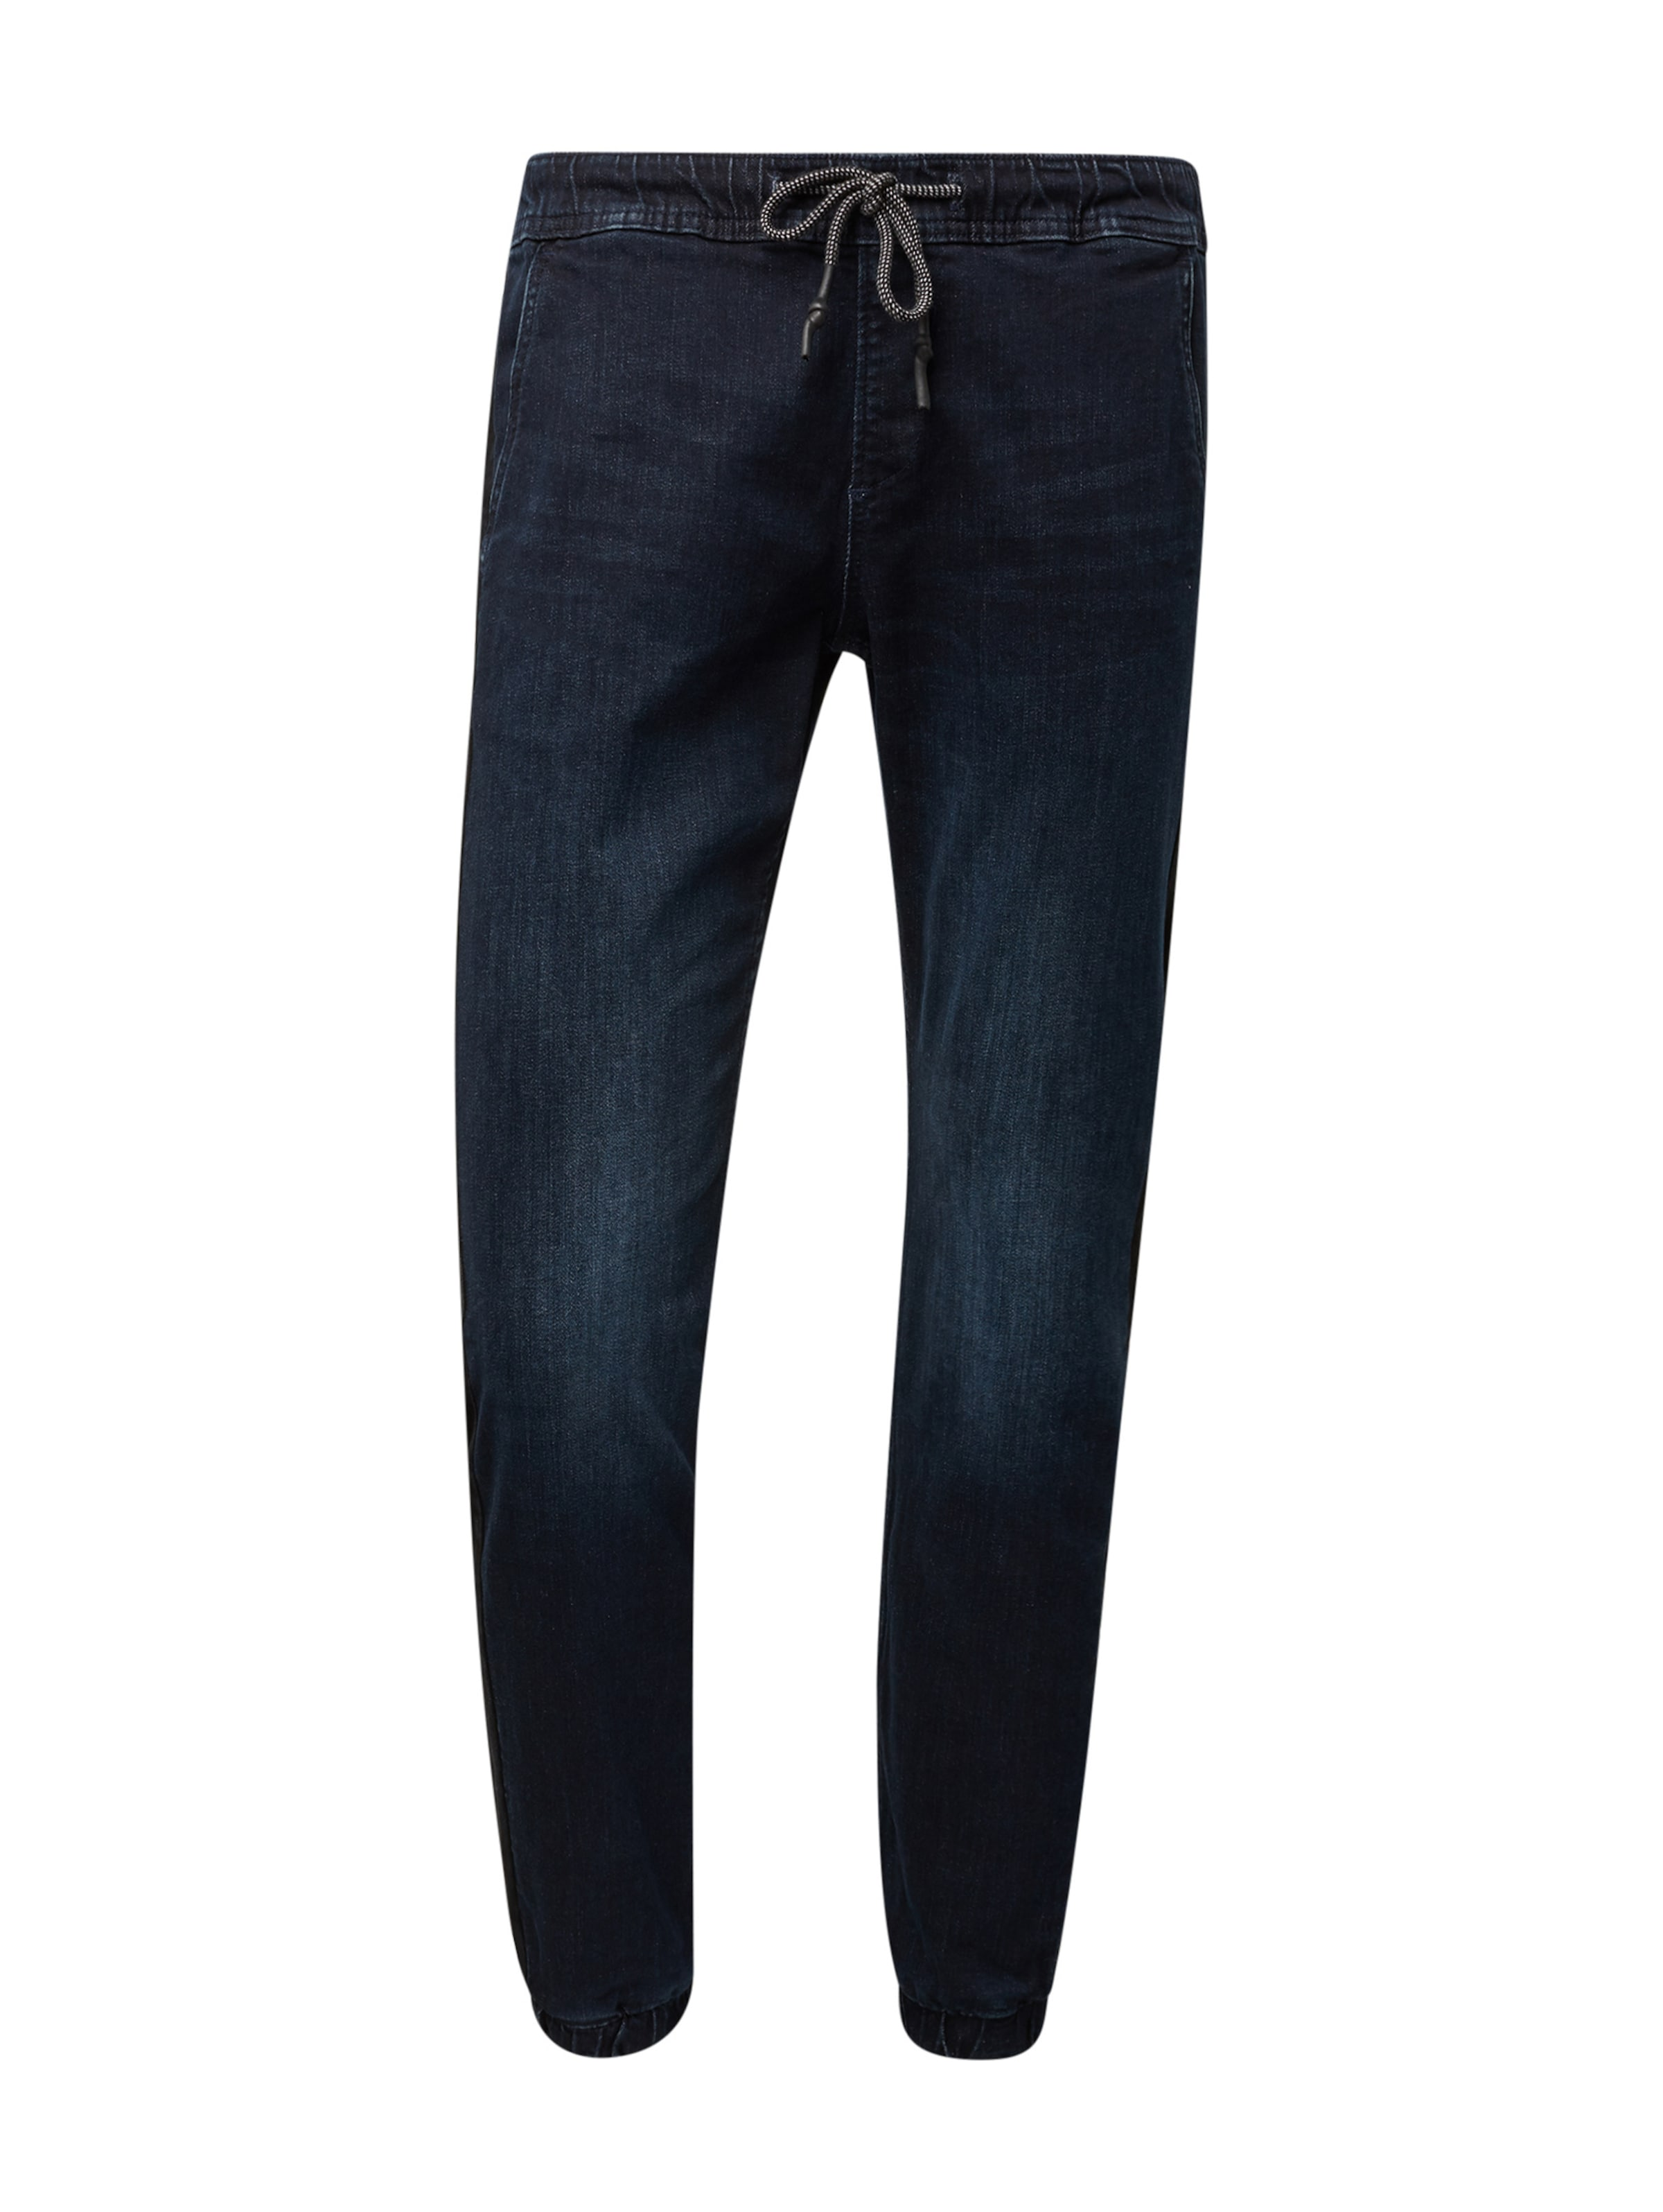 Denim In Tom Jeans BlueSchwarz Tailor tBCshdoQxr